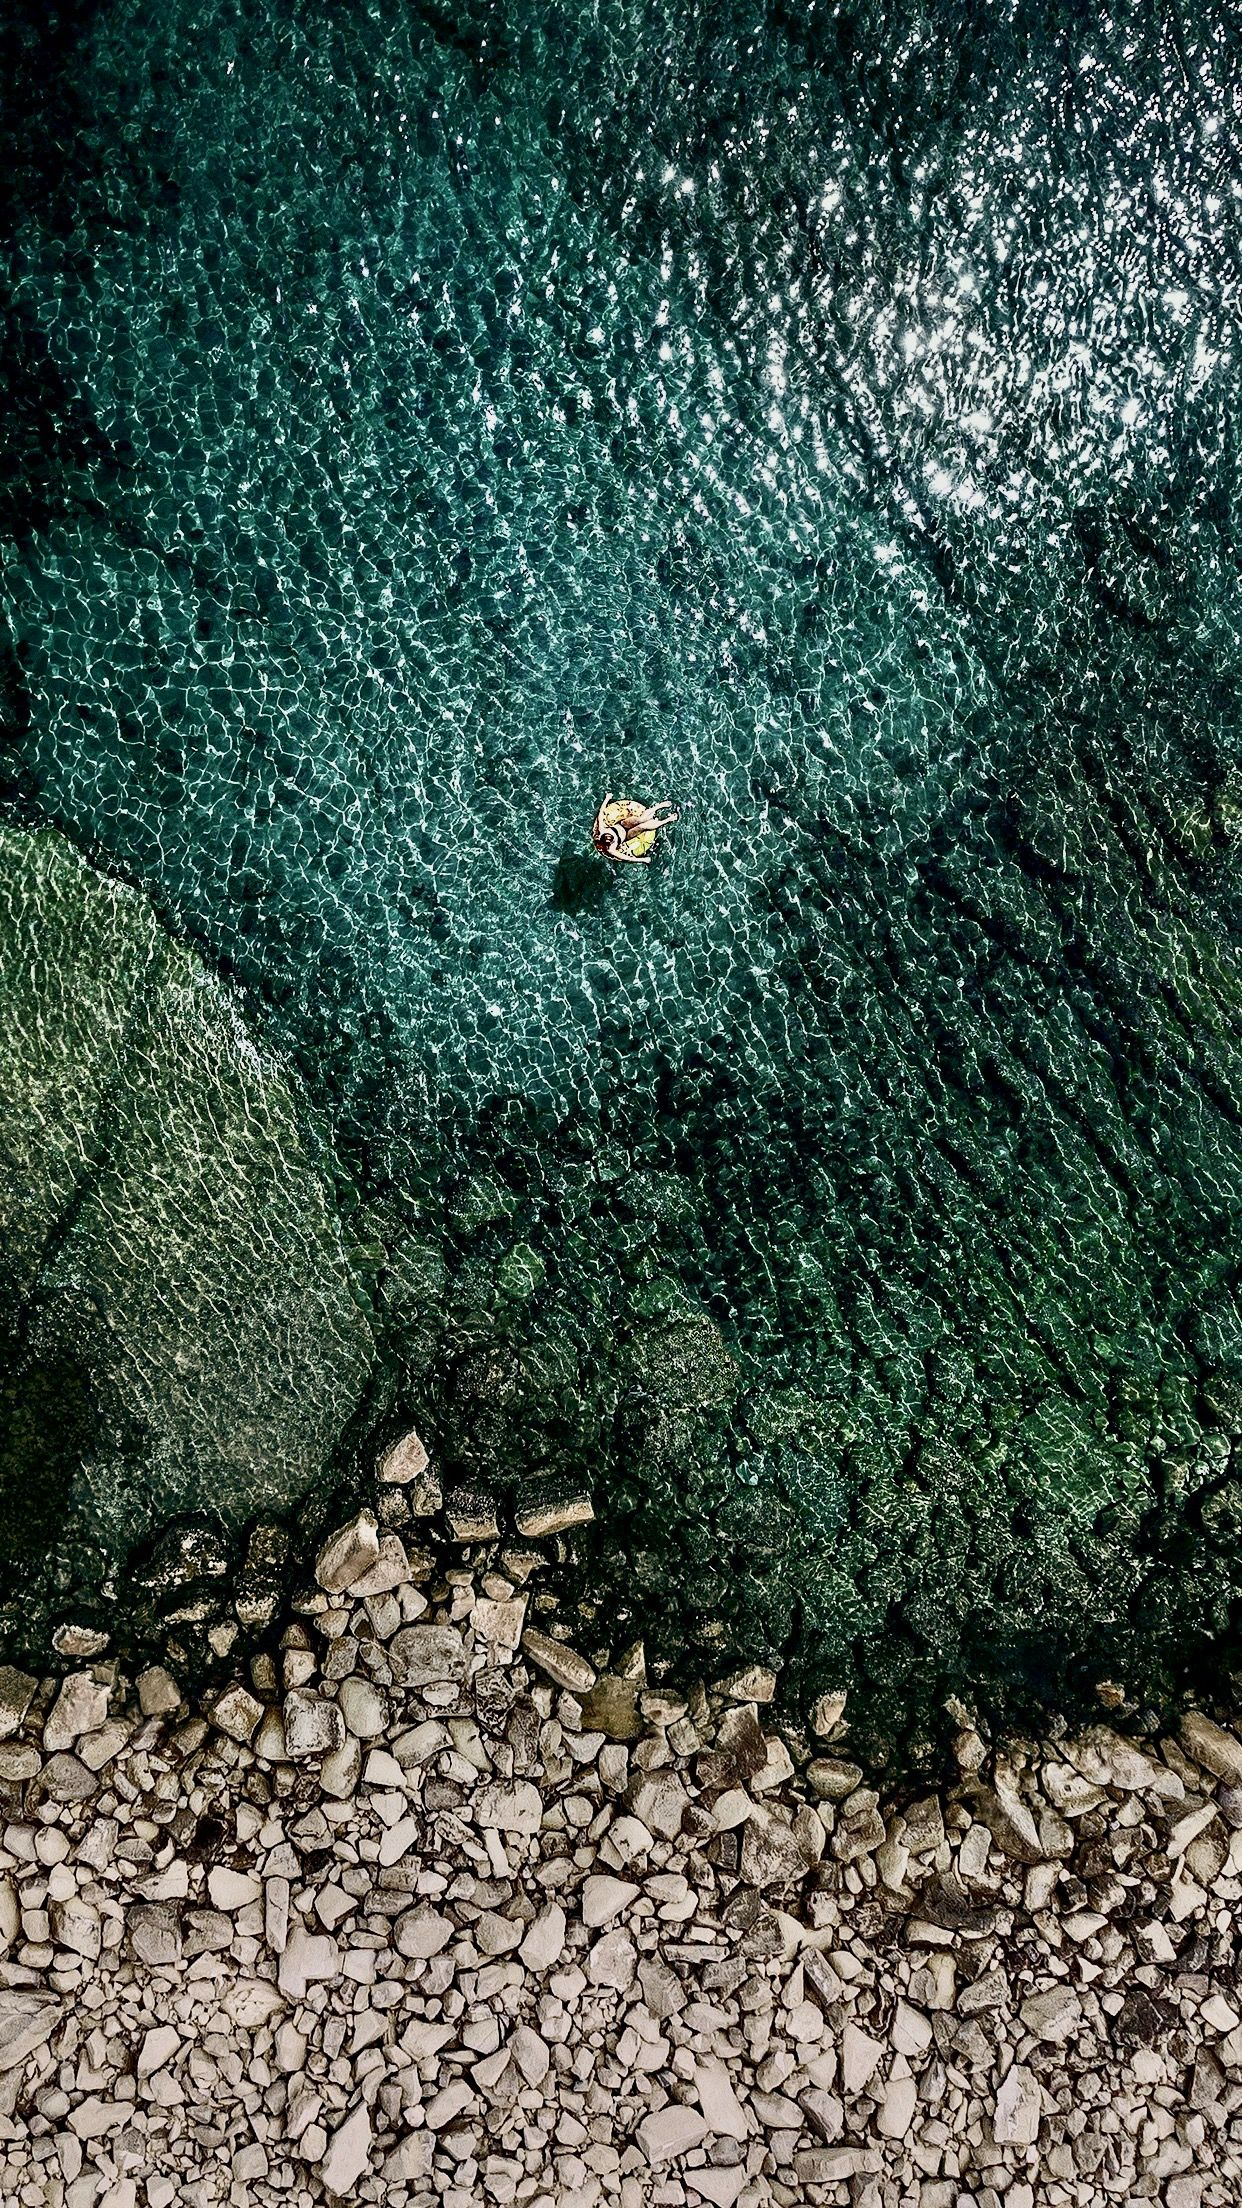 Iphone 7 wallpaper iOS 10.3.3 beach stones.. in 2019 Ios